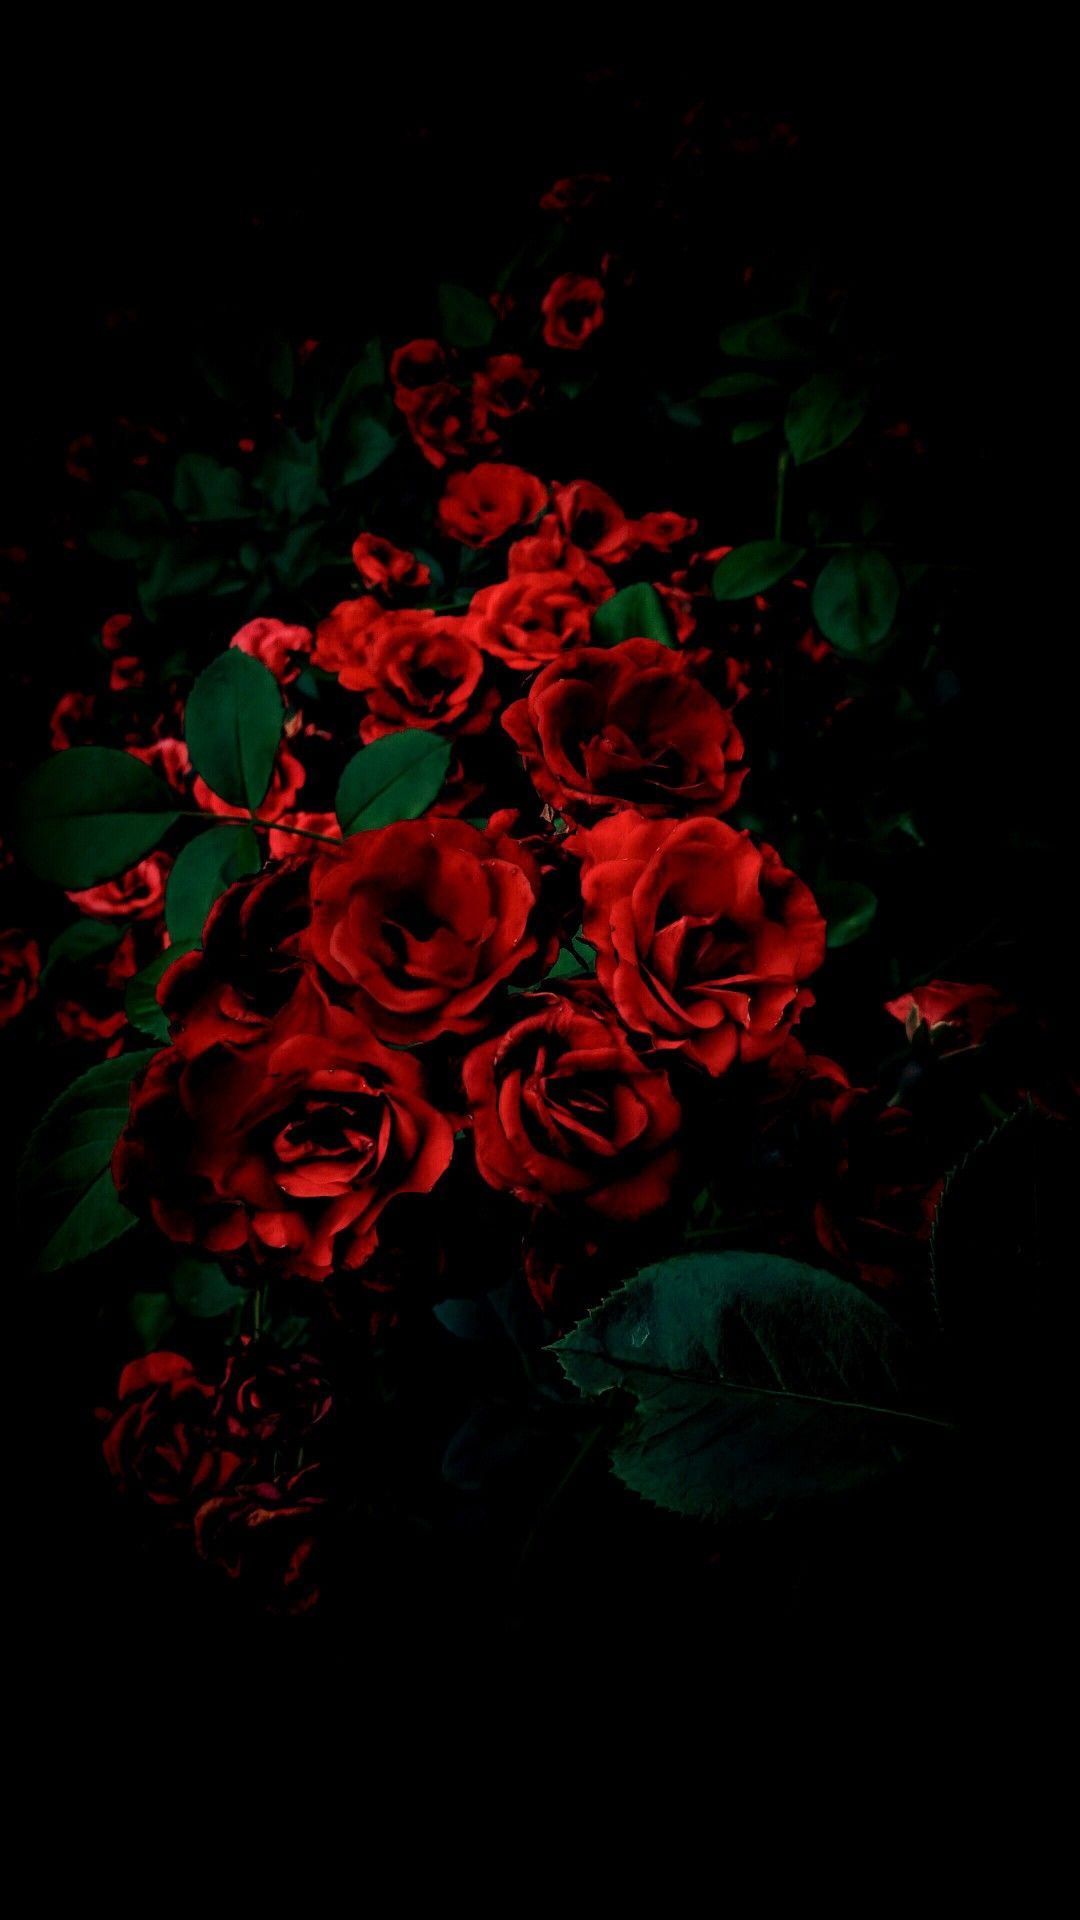 Pin By Phayao Lem On Macro Photography Flowers Black Background Red Roses Wallpaper Rose Background